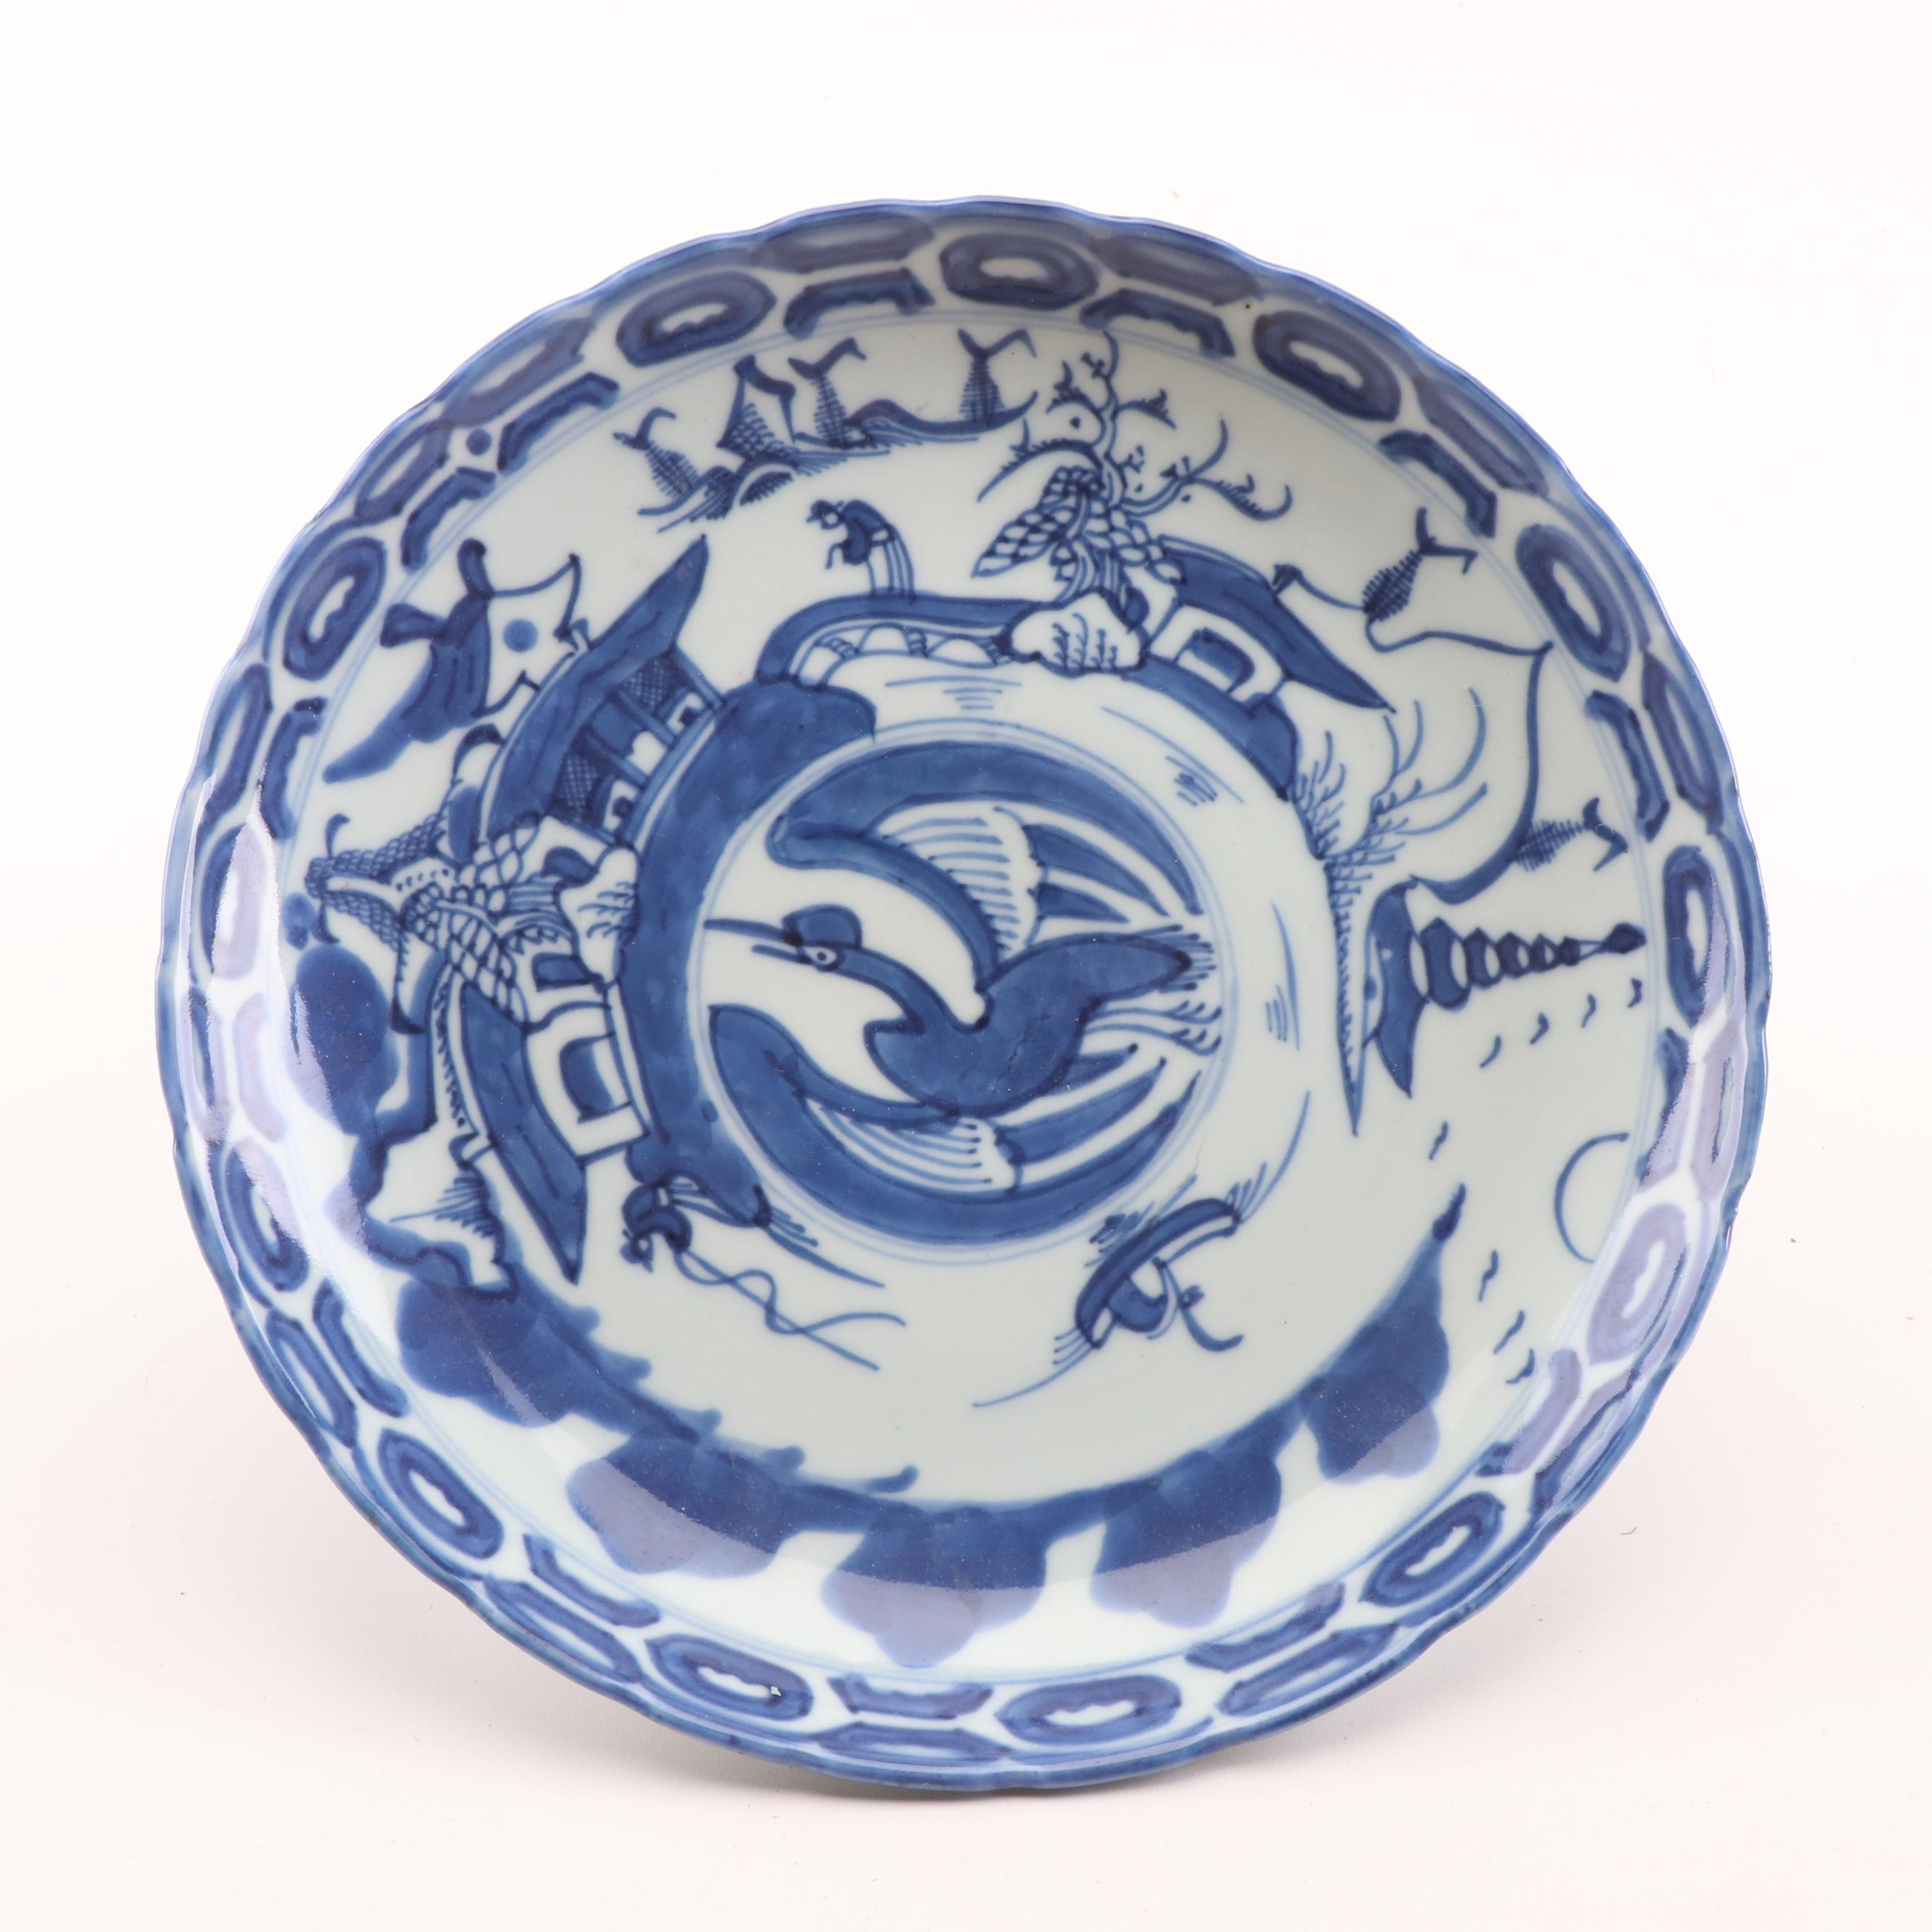 Chinese Porcelain Plate with Phoenix Motif, Tongzhi Period